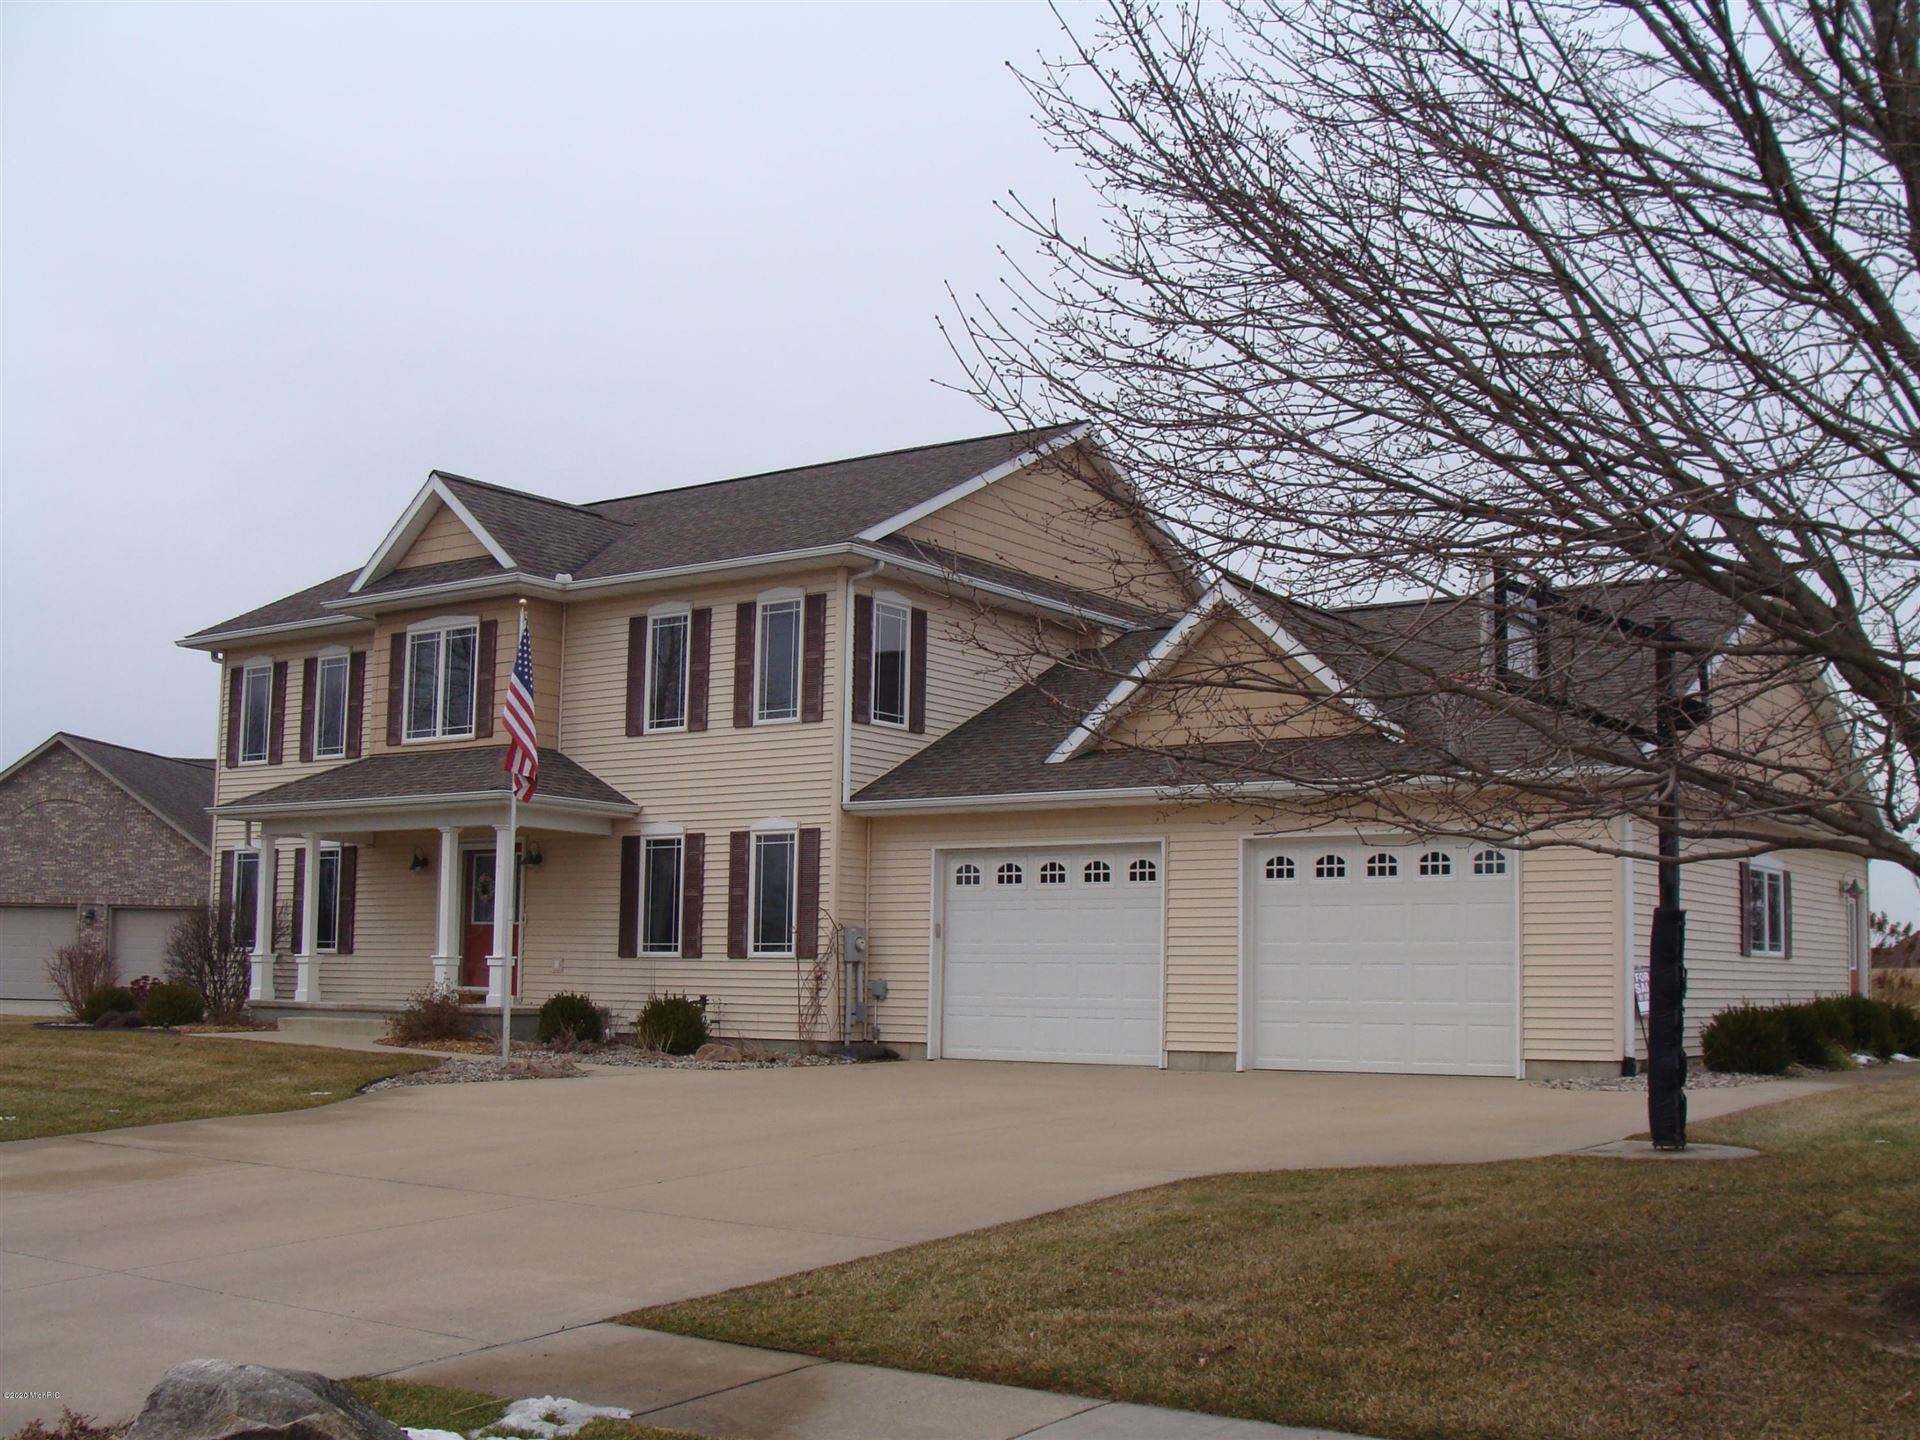 44 Candlewood Court, Coldwater, MI 49036 - #: 20007001